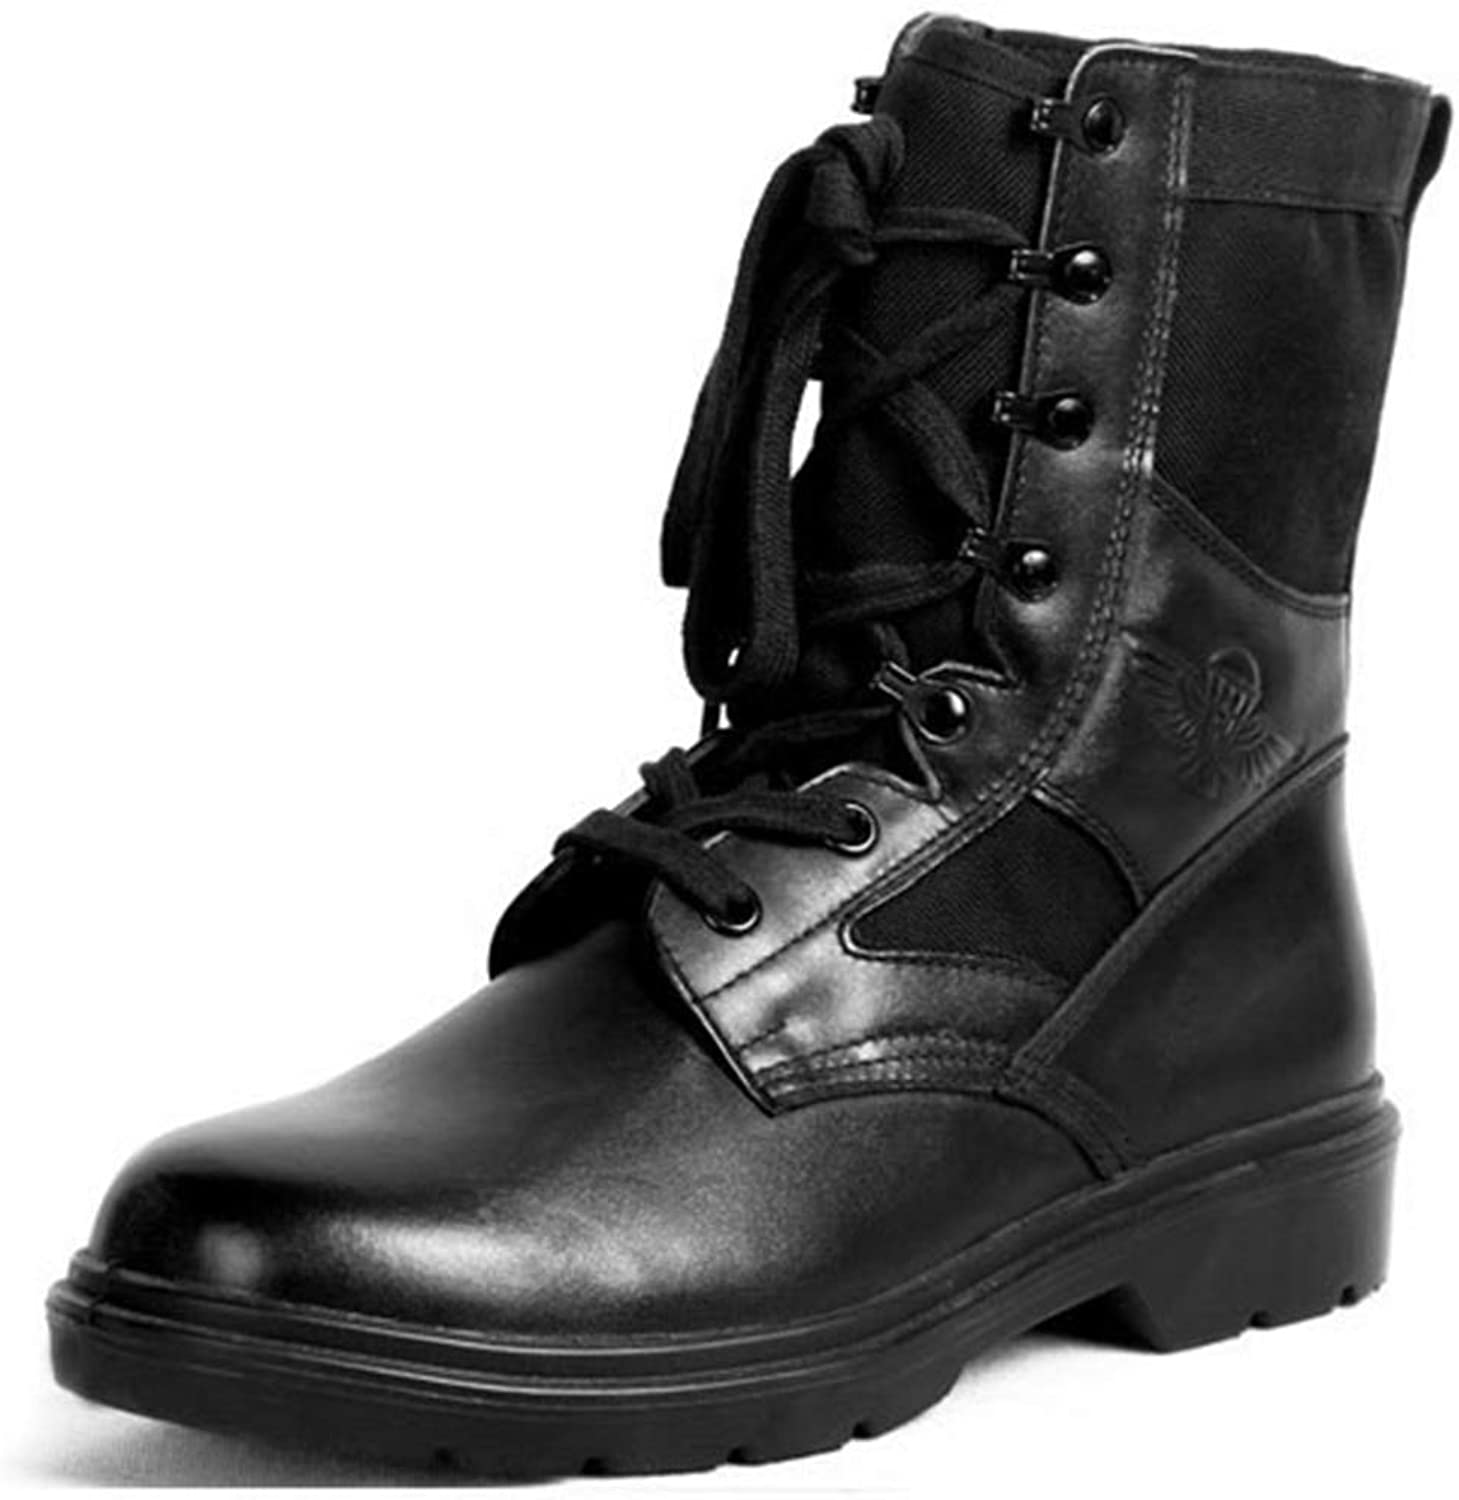 Mens Combat Army Boots High Top Special Forces Military Army Tactics Desert Outdoor Martin shoes Comfortable Breathable Leather Footwear